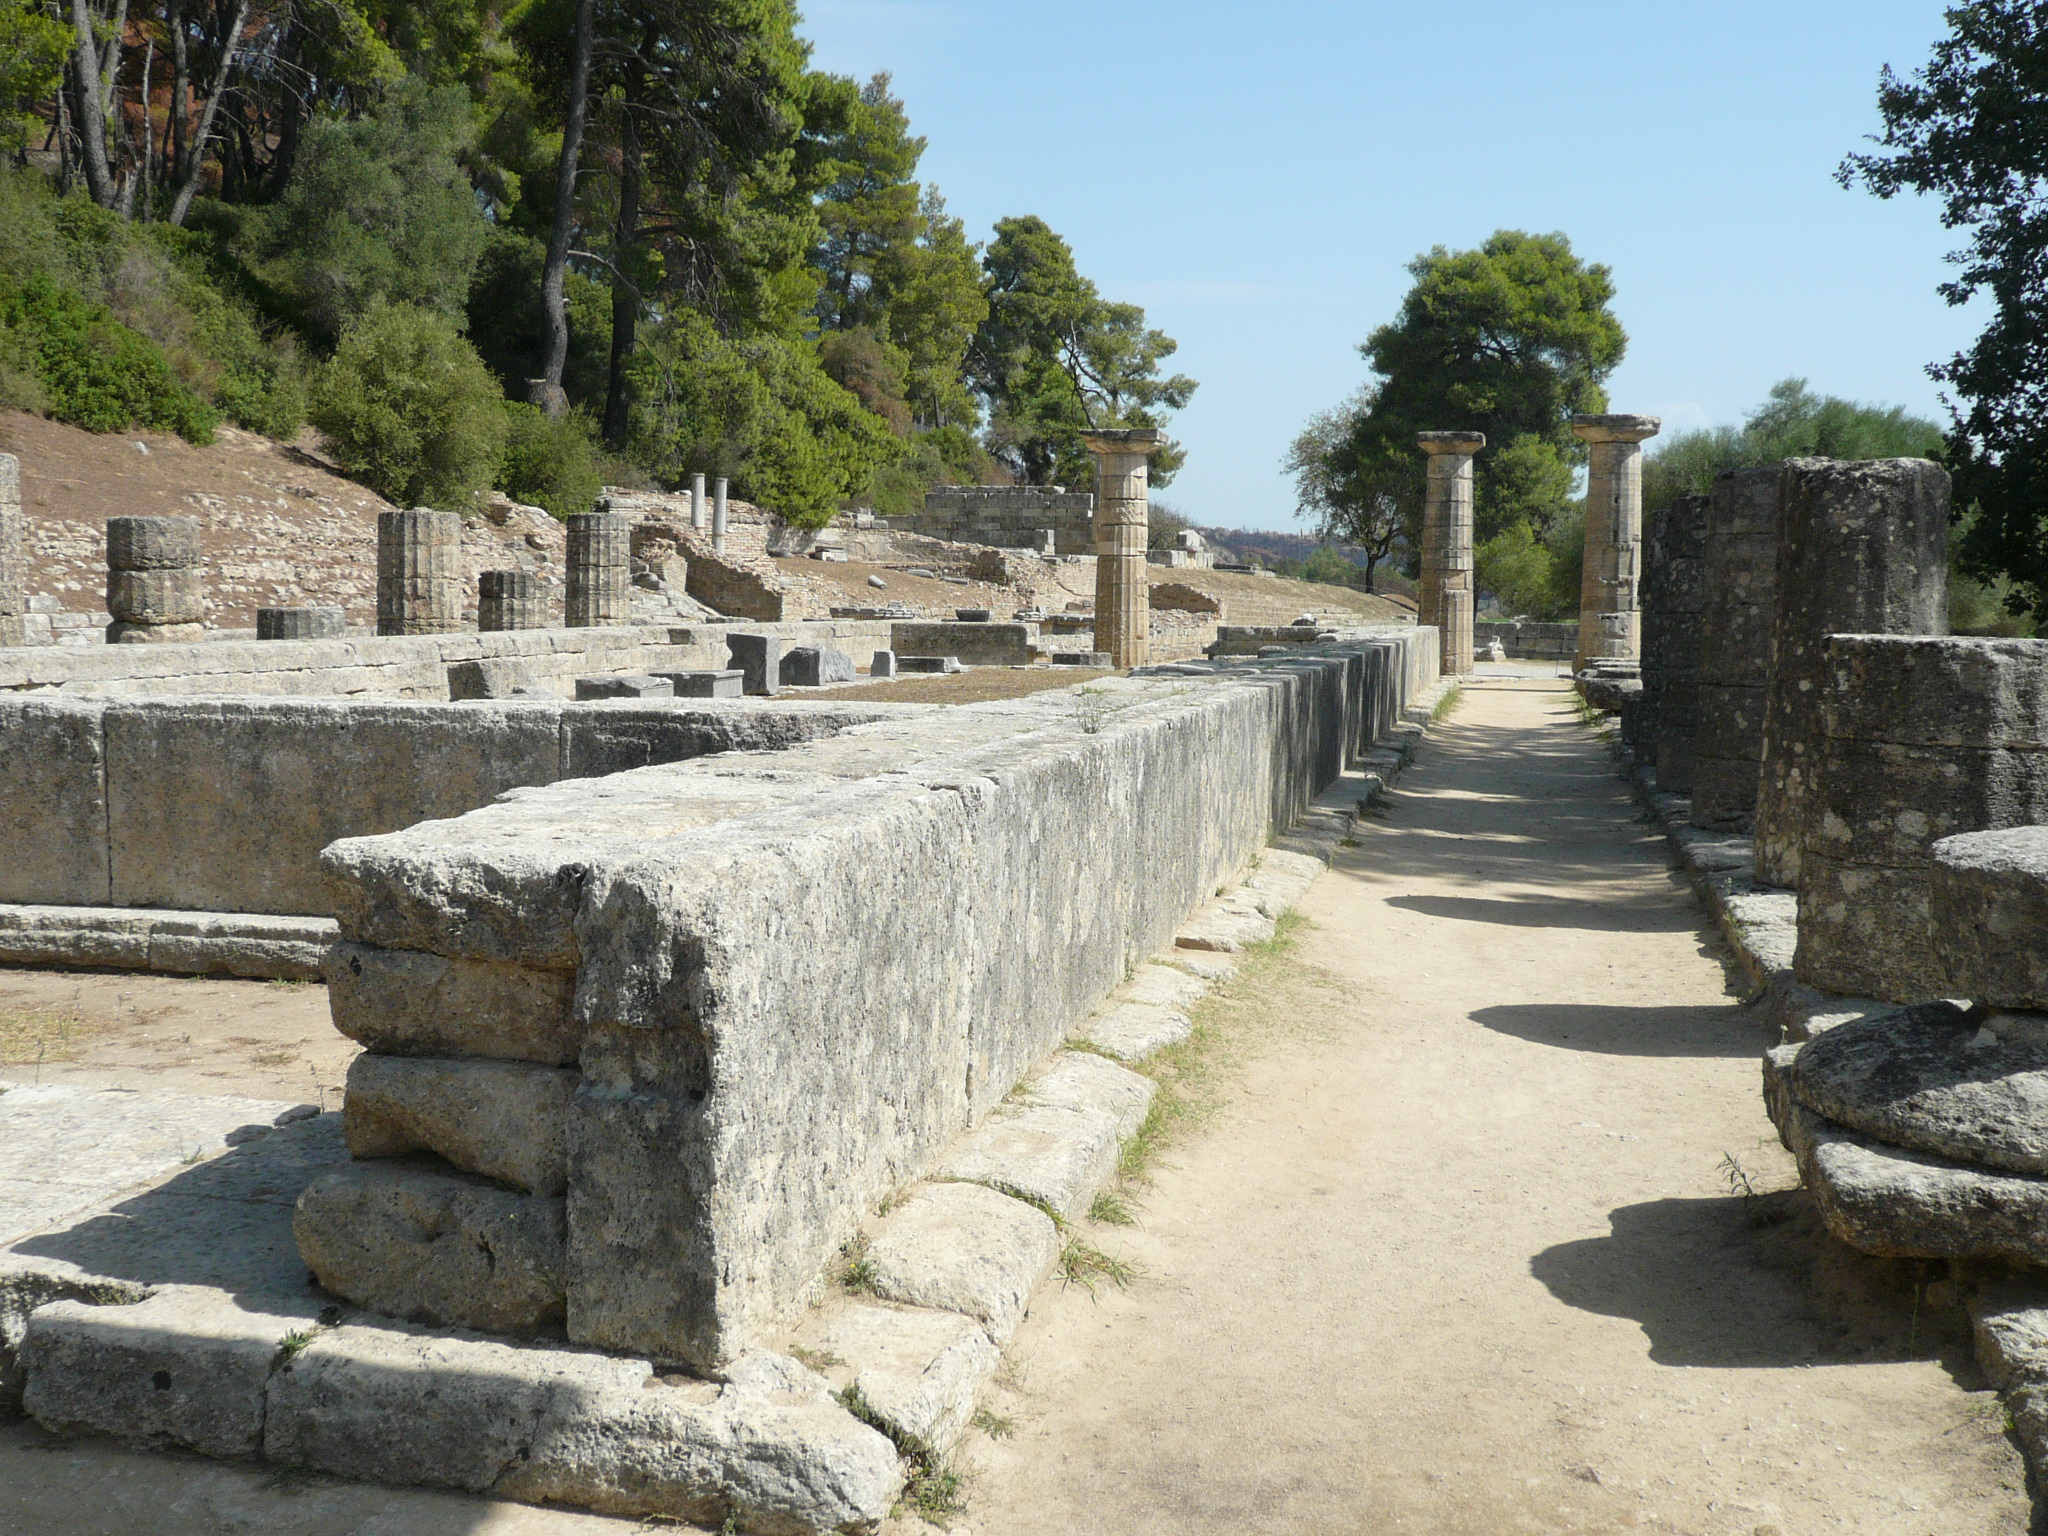 The Archaeological Site of Olympia in Greece, now under threat from approaching wildfires